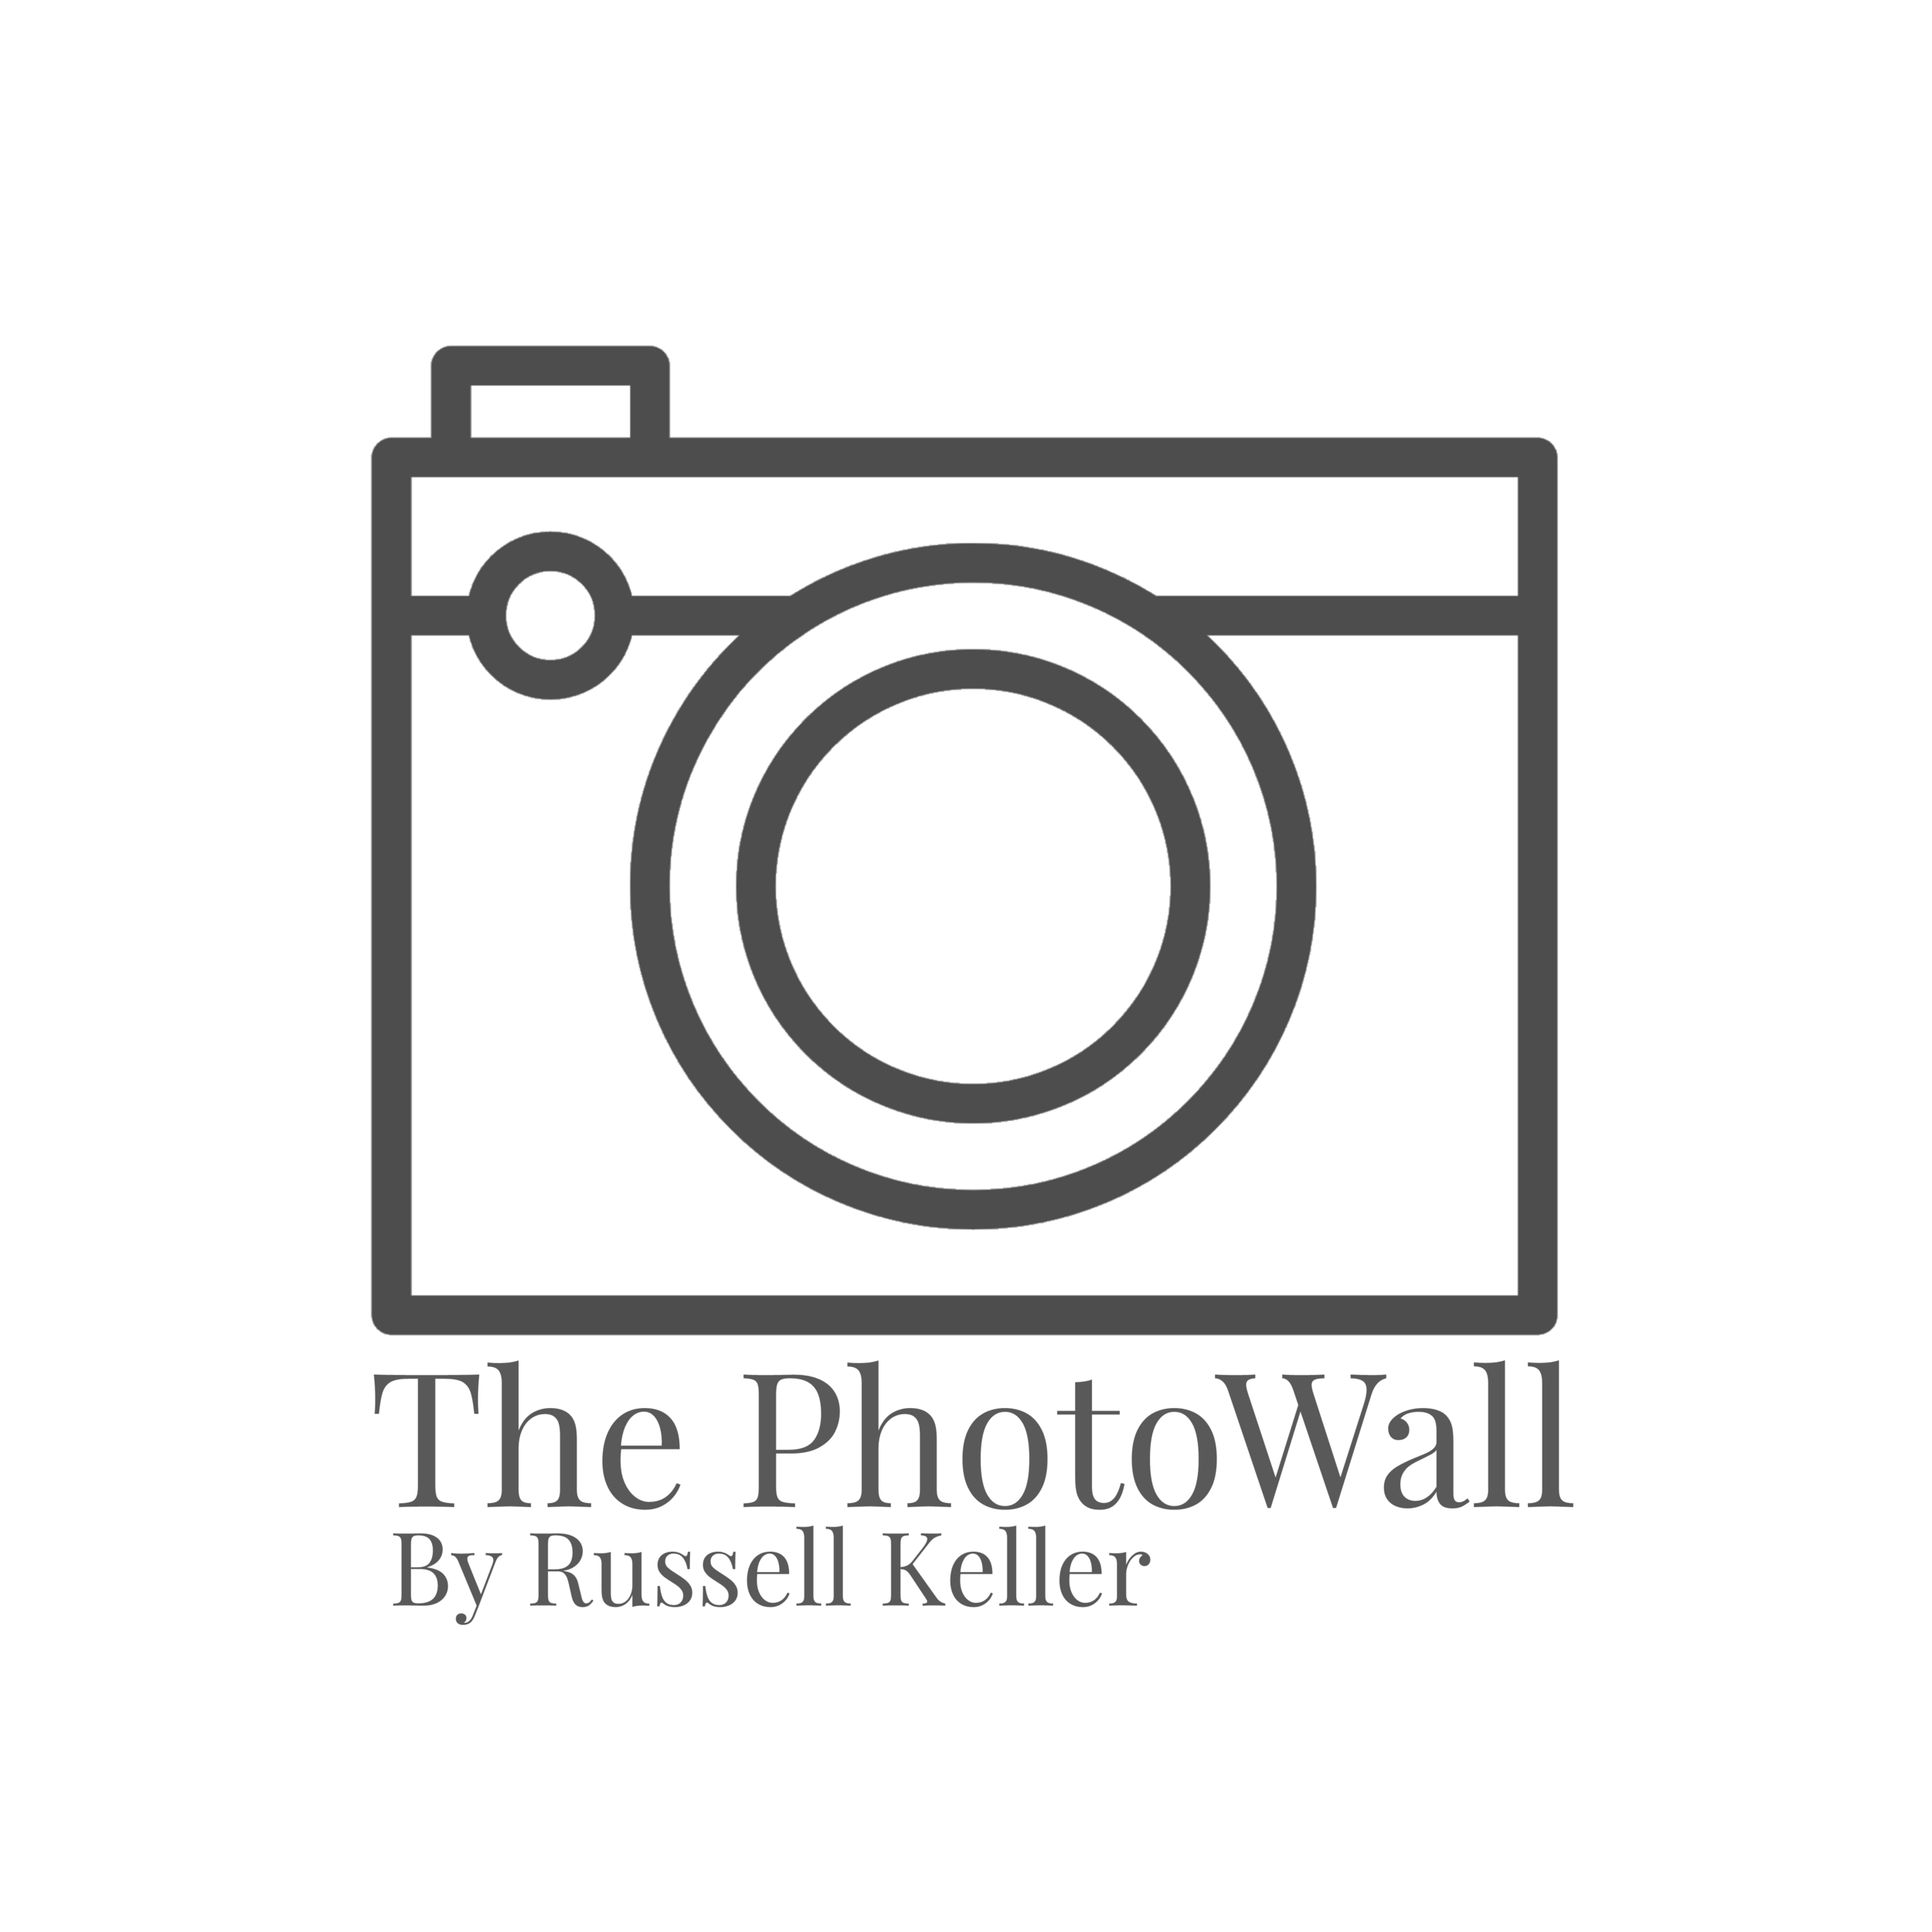 The PhotoWall logo